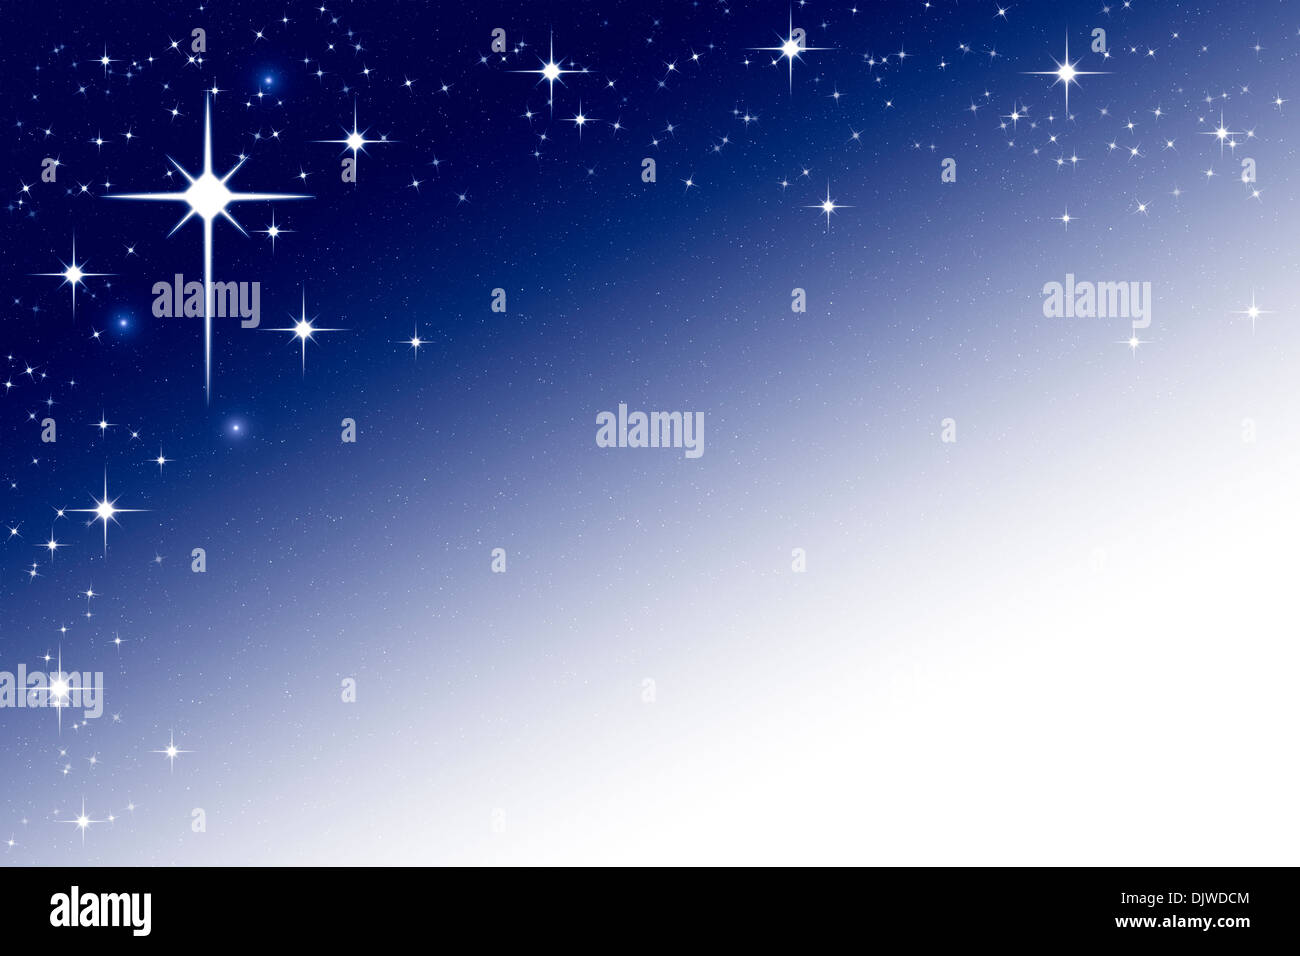 Christmas Night Sky Background Frame with Stars Blue White ...